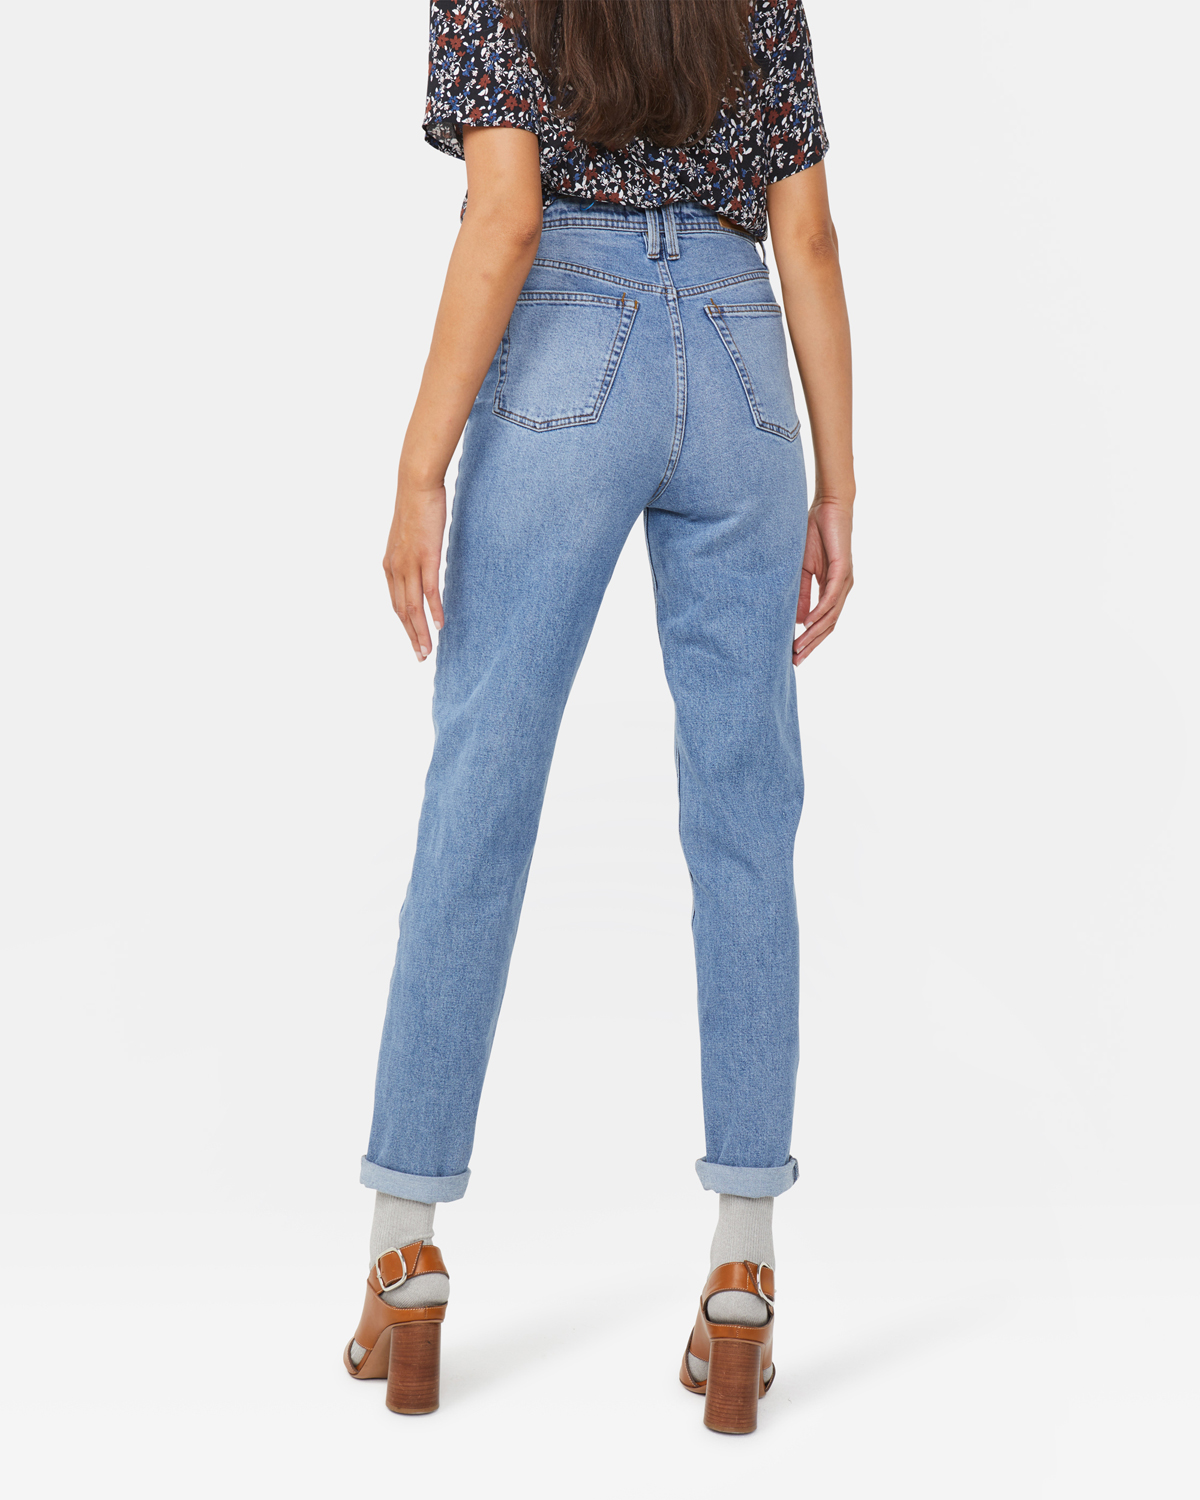 Damen Skinny Fit Jeans mit hoher Taille   94891454_0785 WE Fashion